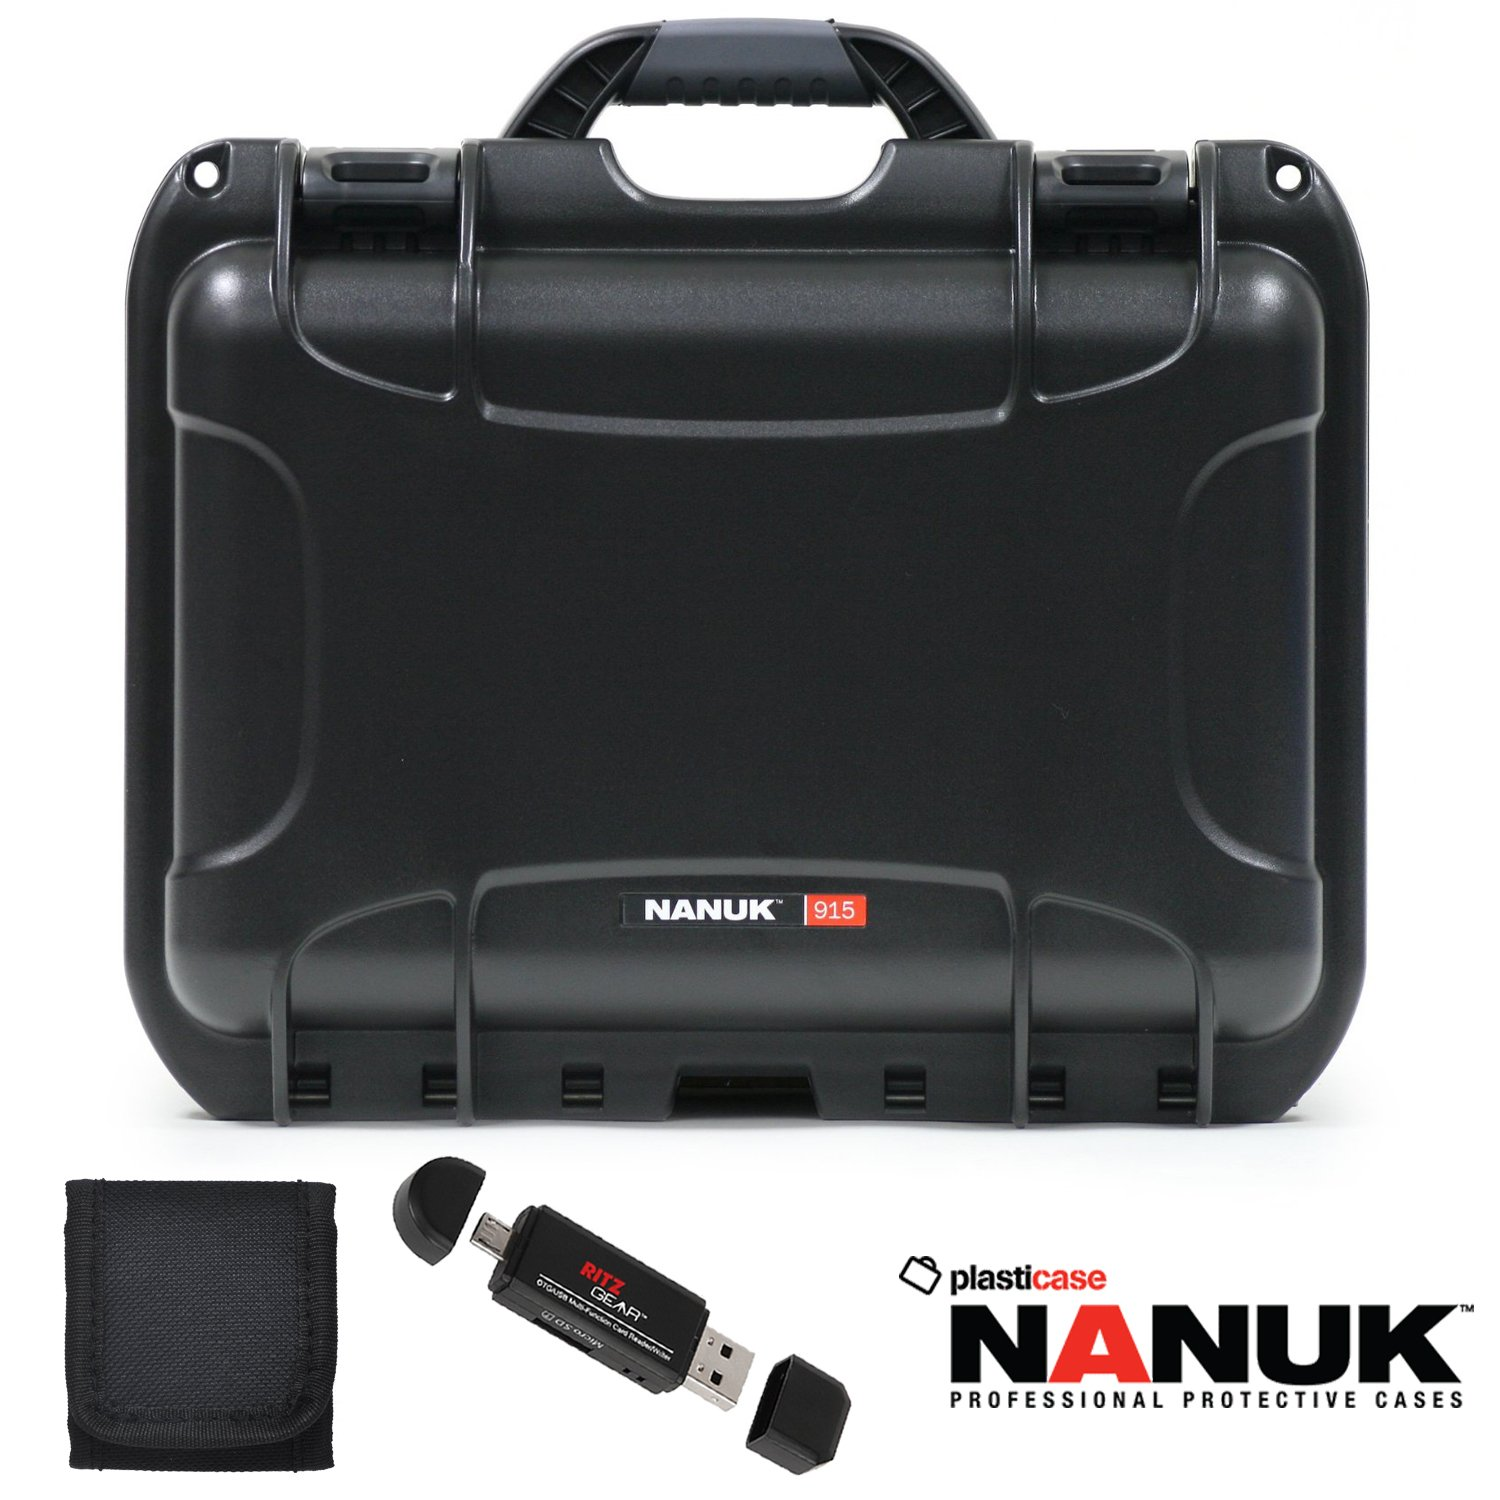 Nanuk 915 Hard Case with Cubed Foam Black, Memory Card Wallet and Ritz Gear Card Reader / Writer